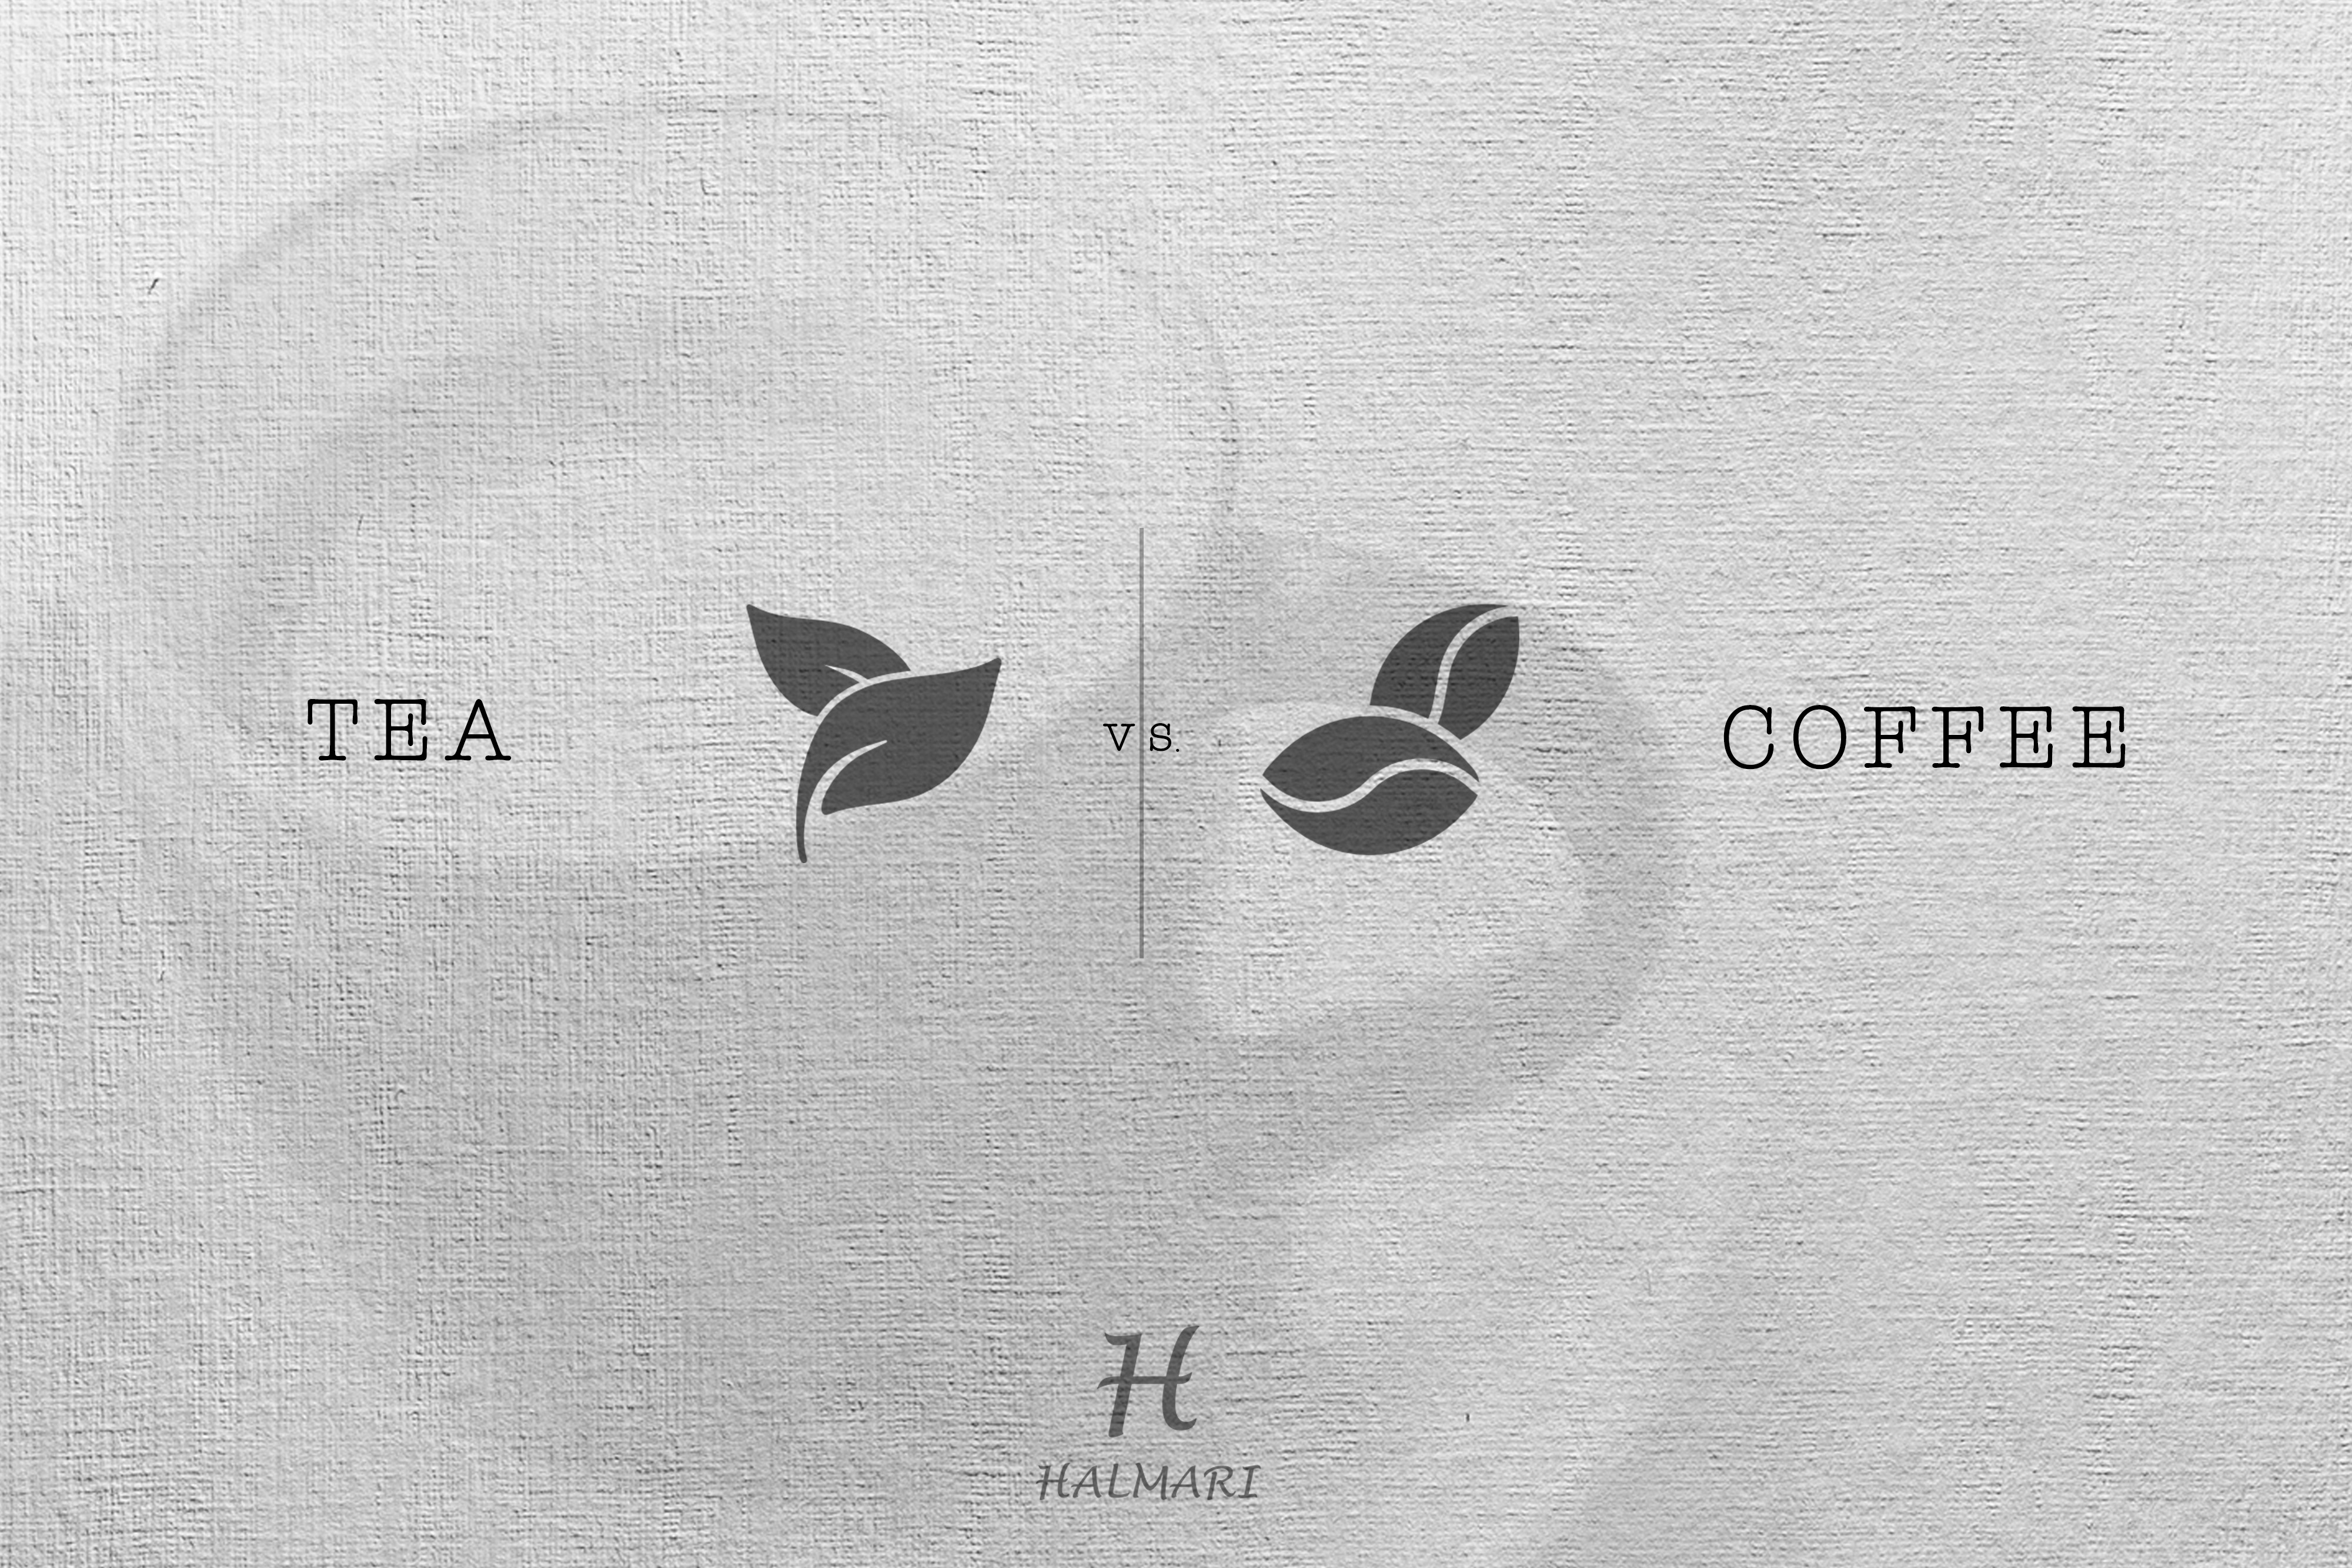 Tea vs Coffee - Blog